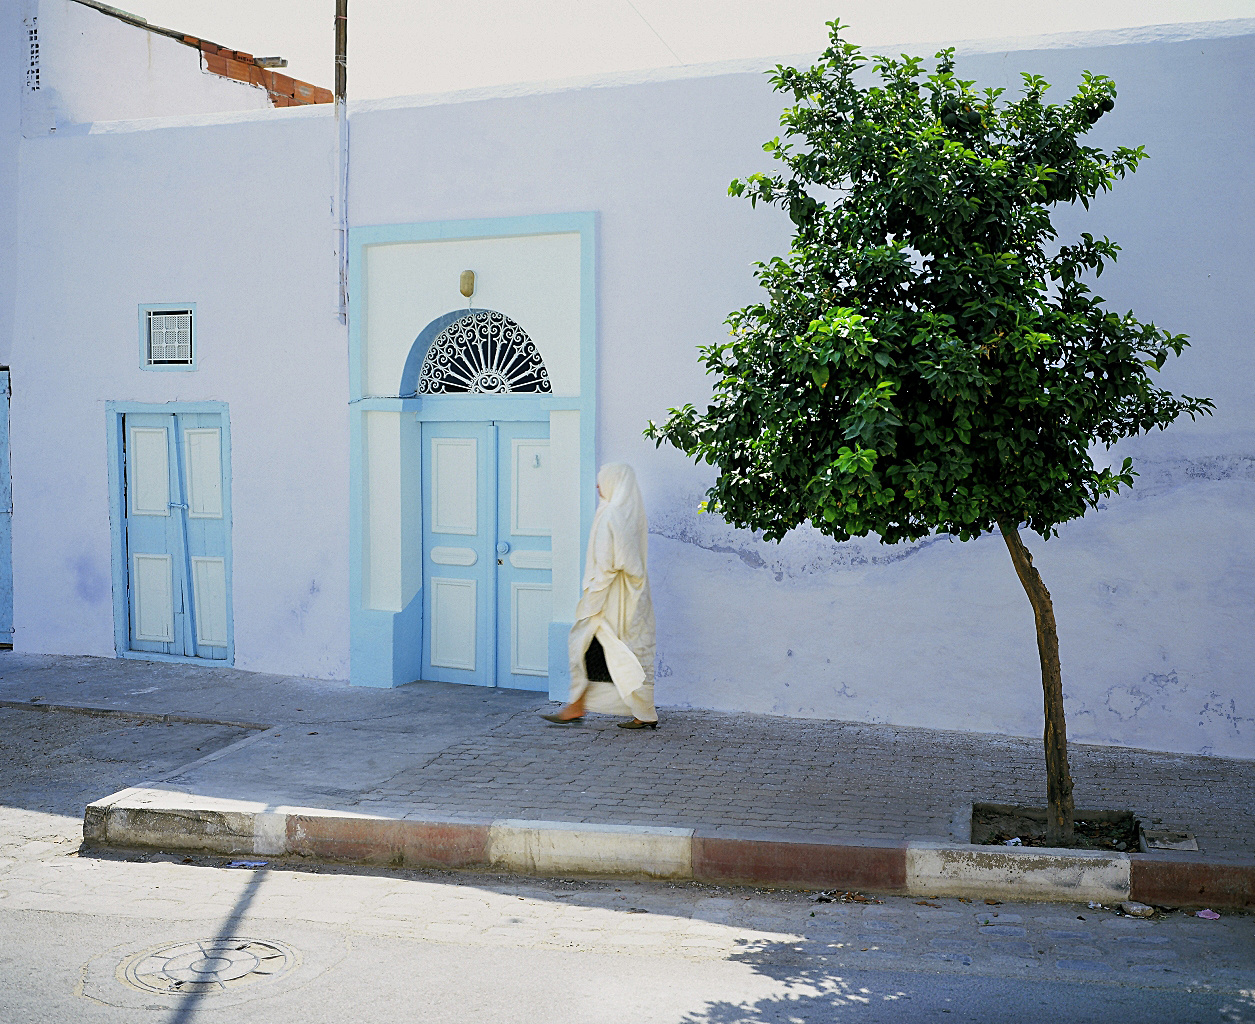 Tunisia Photo Gallery